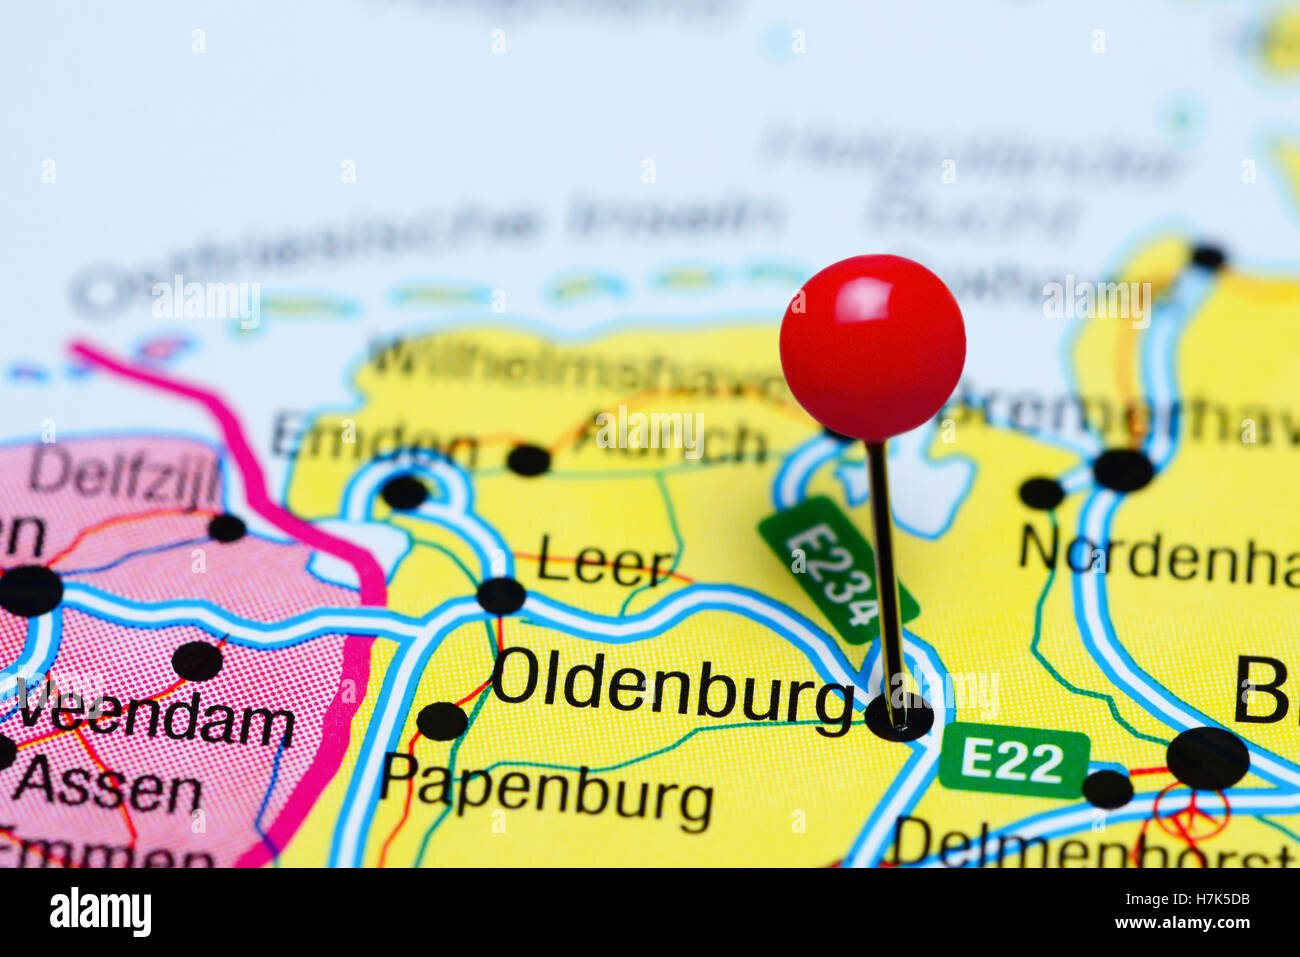 Oldenburg Pinned On A Map Of Germany Stock Photo Royalty Free - Oldenburg map